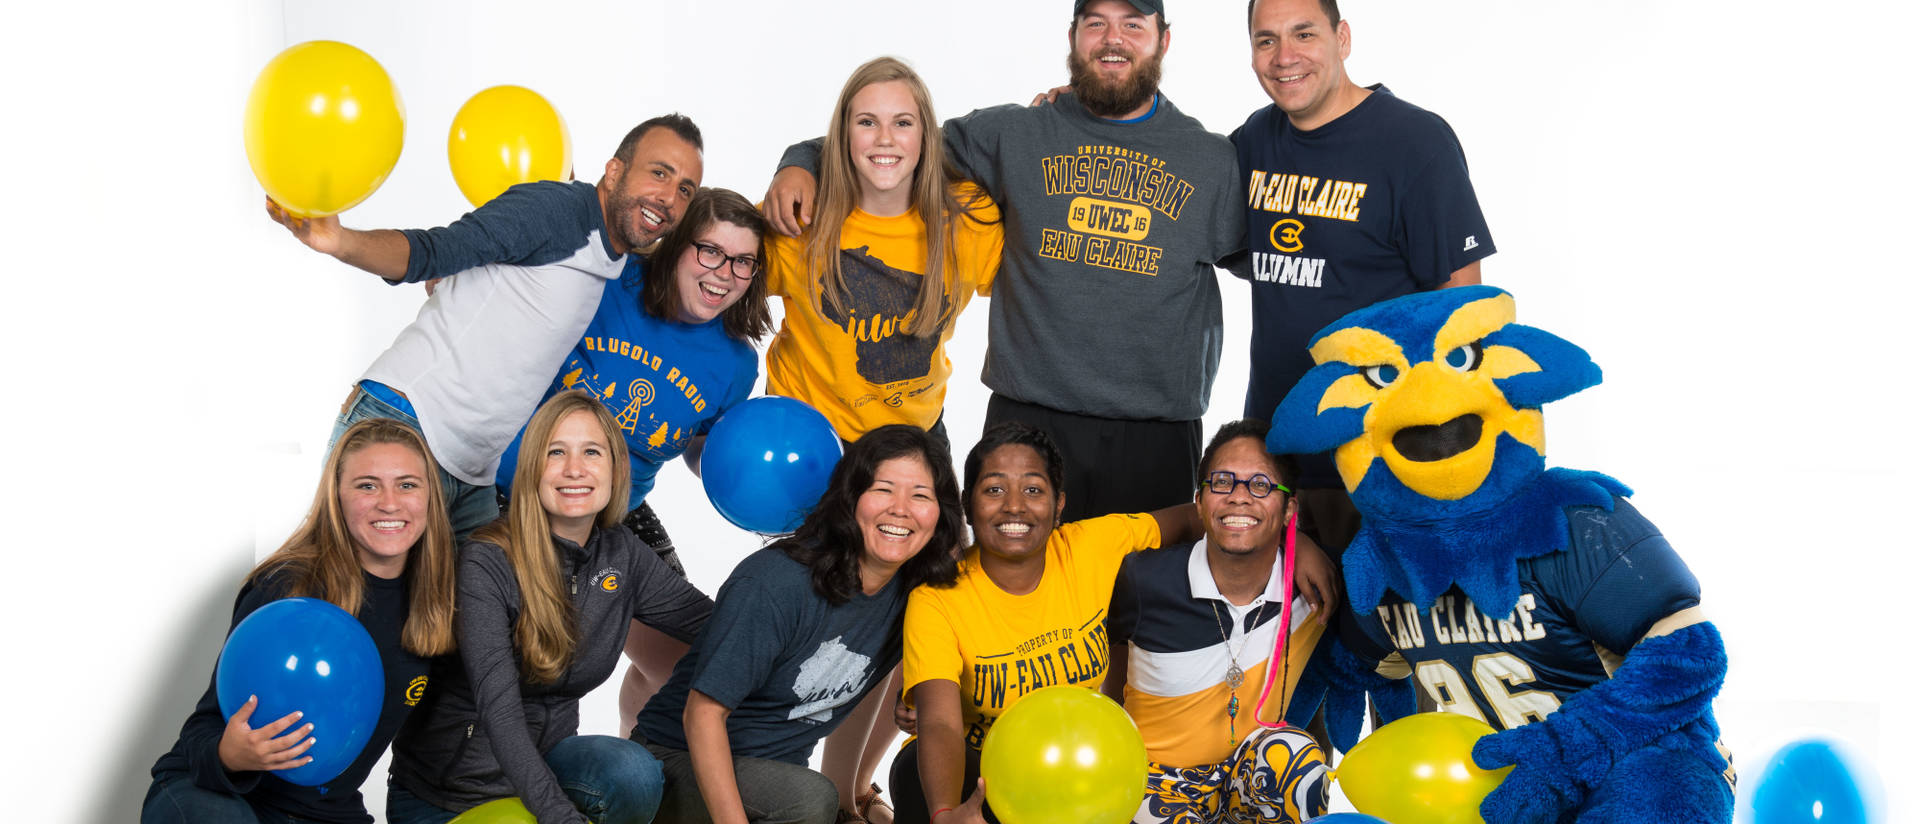 UW-Eau Claire students showing Blugold gear and Blugold pride on Blugold Friday